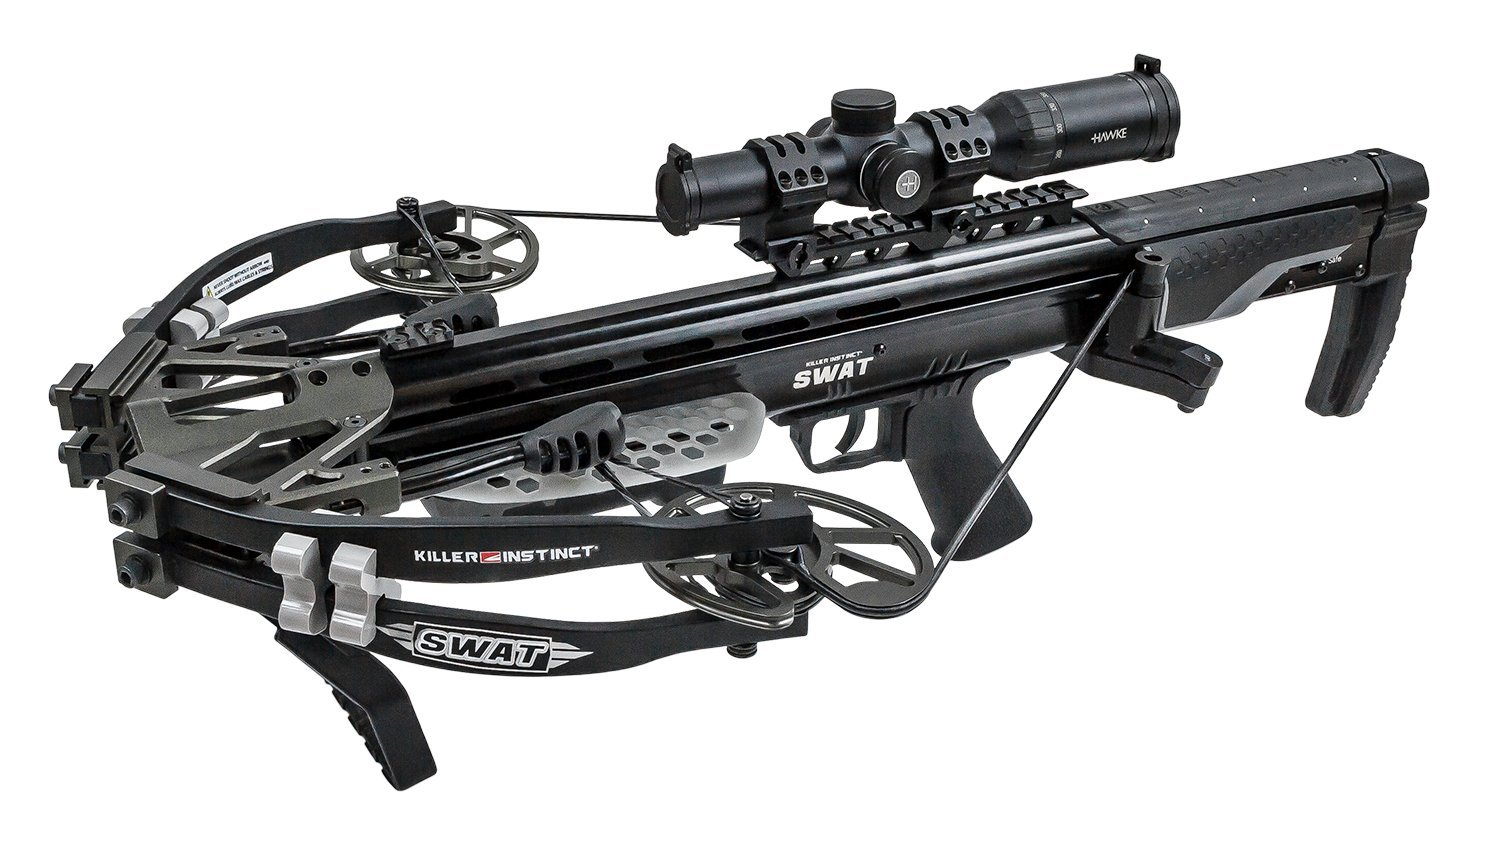 Killer Instinct SWAT Package - High Performance, Accurate Crossbow - Includes Hawke XB30 Pro 1-5 X 30 Scope, Deadening Limb Silencers, Folding Foot Stirrup, and 2.5 lb. Killer Instinct Trigger by Killer Instinct (Image #4)